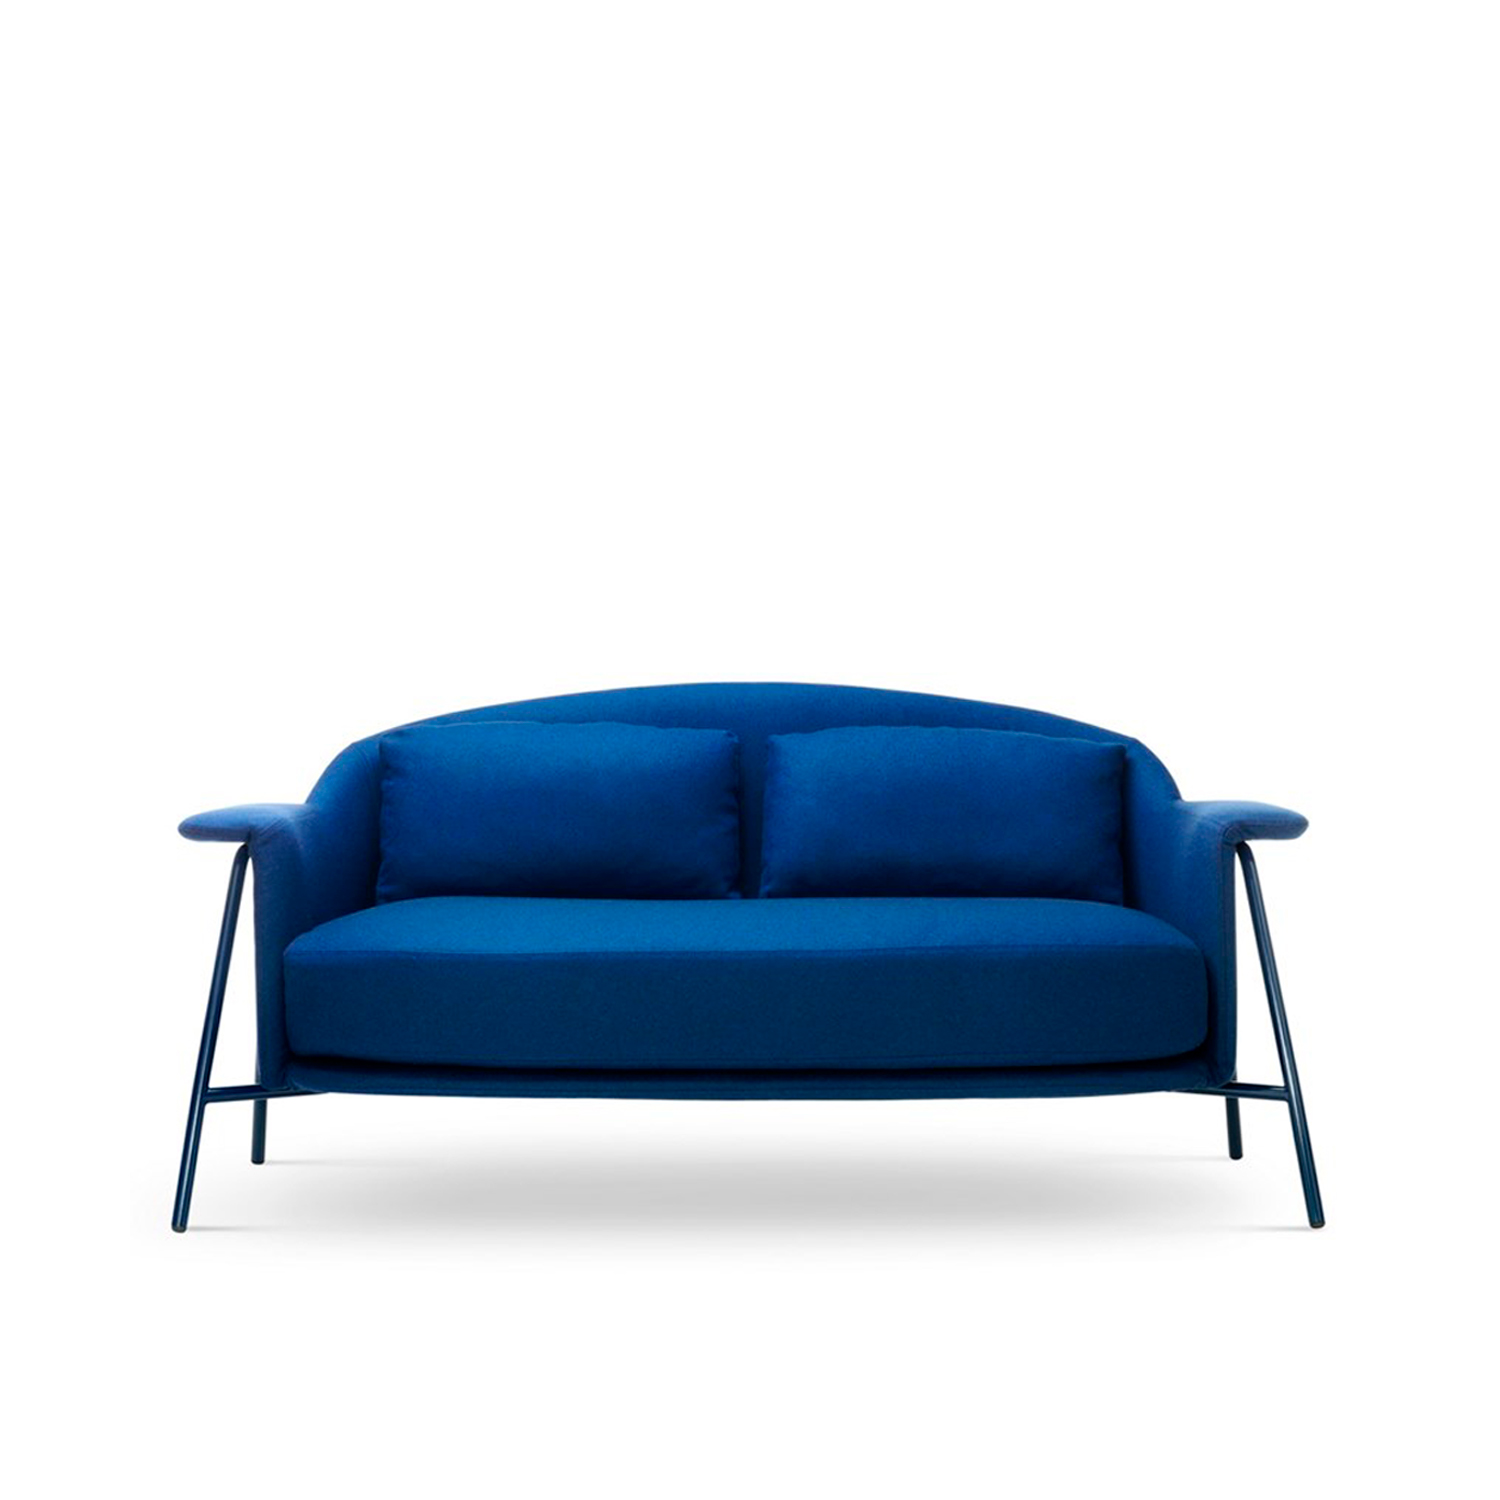 Kepi Sofa - The Kepi sofa's sober design and vaguely Nordic look are softened by rounded lines that add character and improve comfort. This is the Kepi sofa, featuring complete symmetry with two back cushions and one seat cushion. Its clean design and nonchalant elegance make it perfect for the home and the contract environment. The functional supporting structure is made of tubular stainless steel. Fully removable covers.  Additional removable cover is available, please enquire for prices.  Materials Base made of bleached ash wood or black painted (only for armchair) or base in iron painted rod. | Matter of Stuff